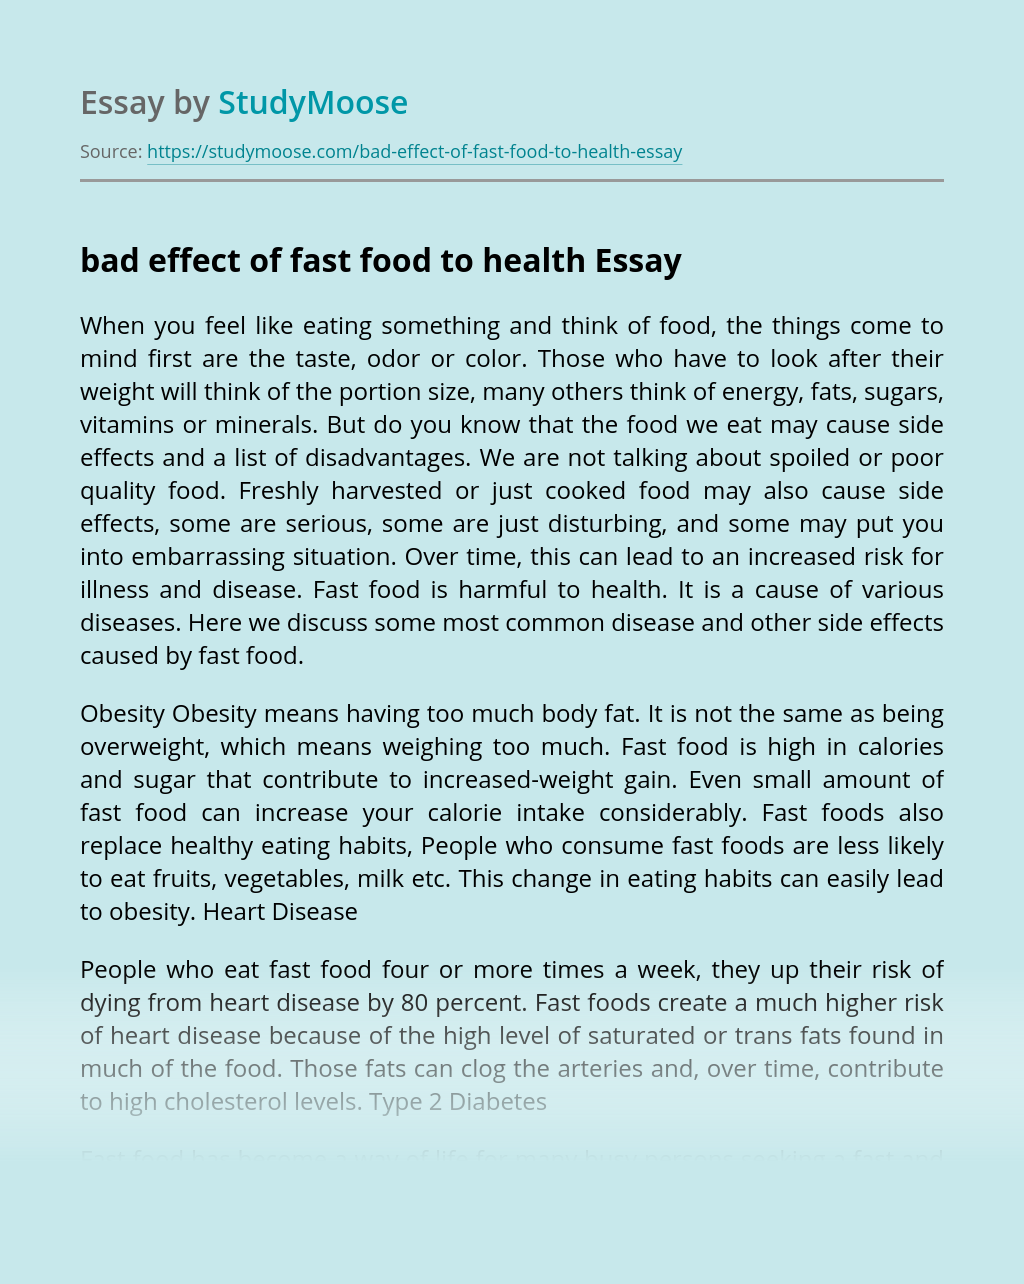 bad effect of fast food to health